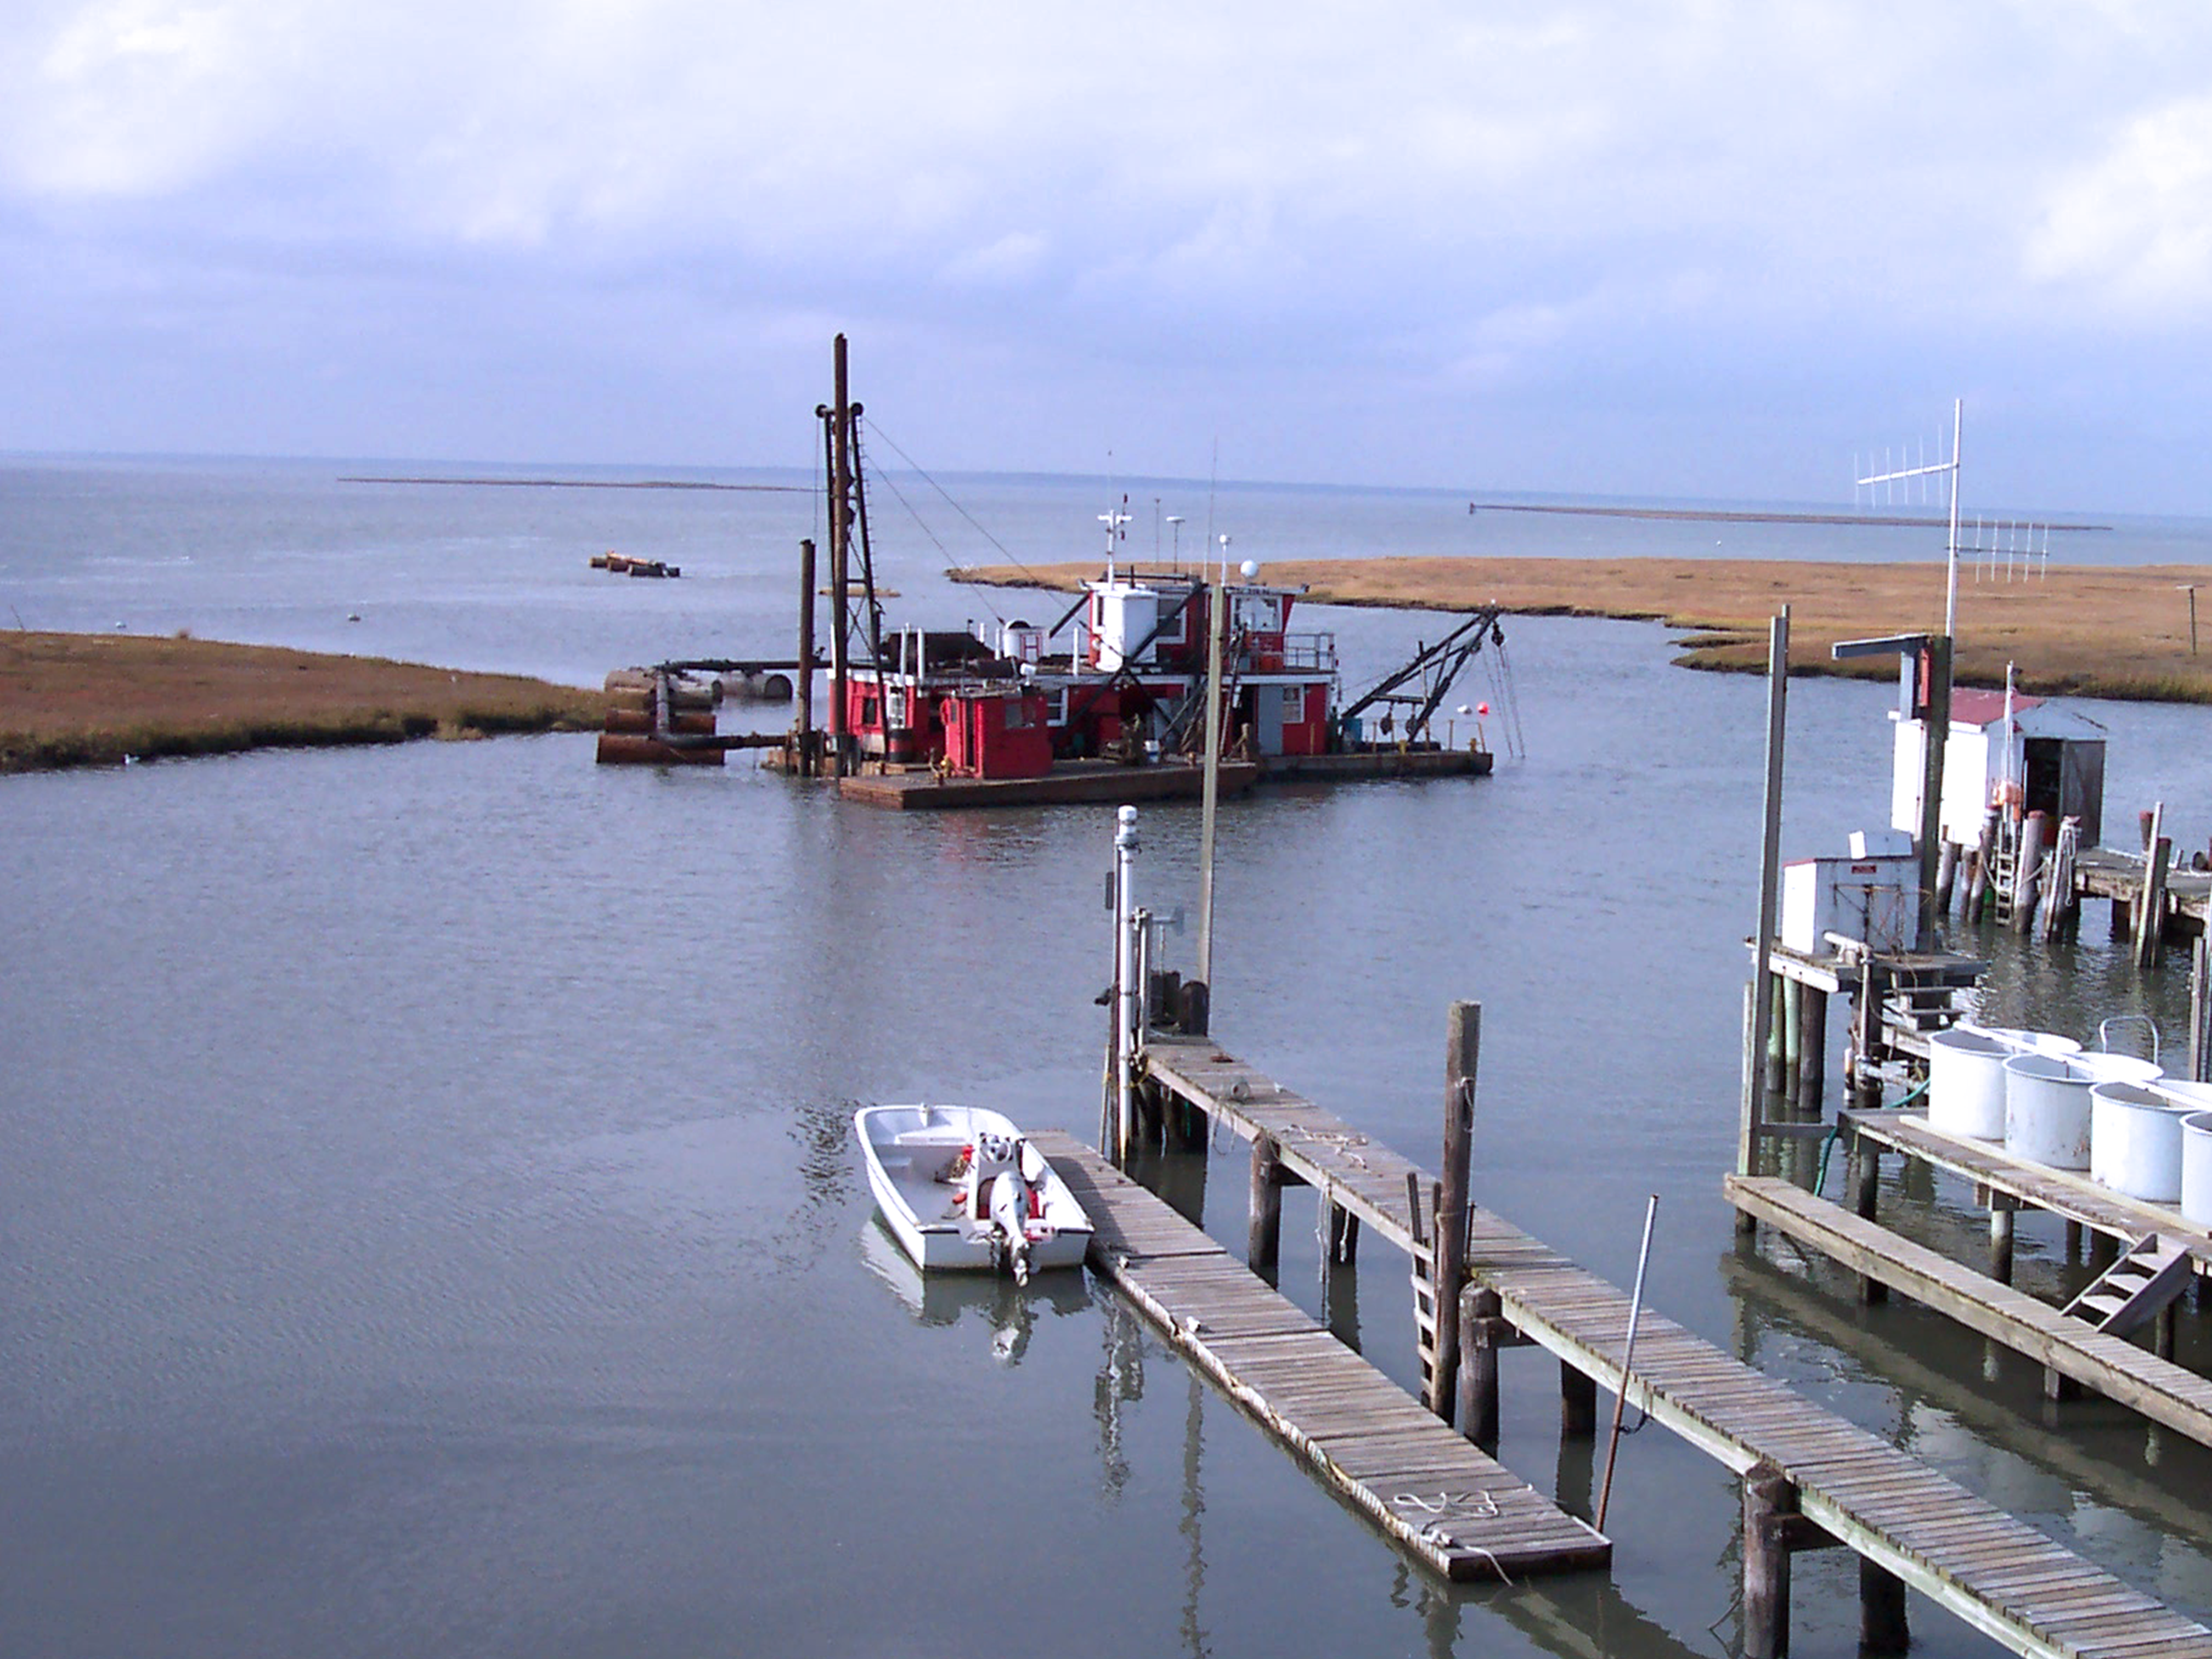 Dredging commences in the Rutgers University Marine Field Station boat basin